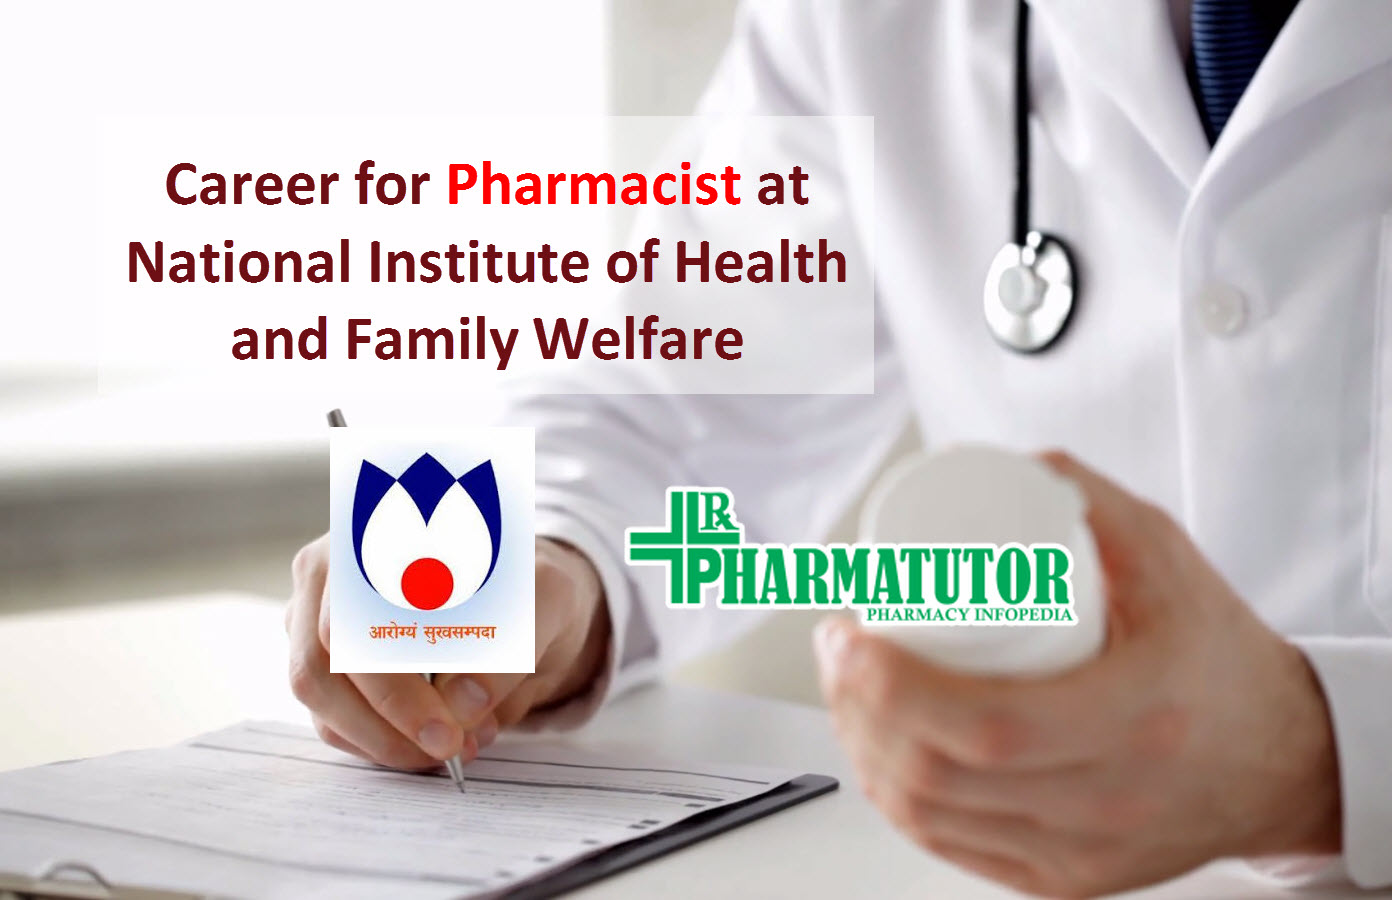 Career for Pharmacist at National Institute of Health and Family Welfare